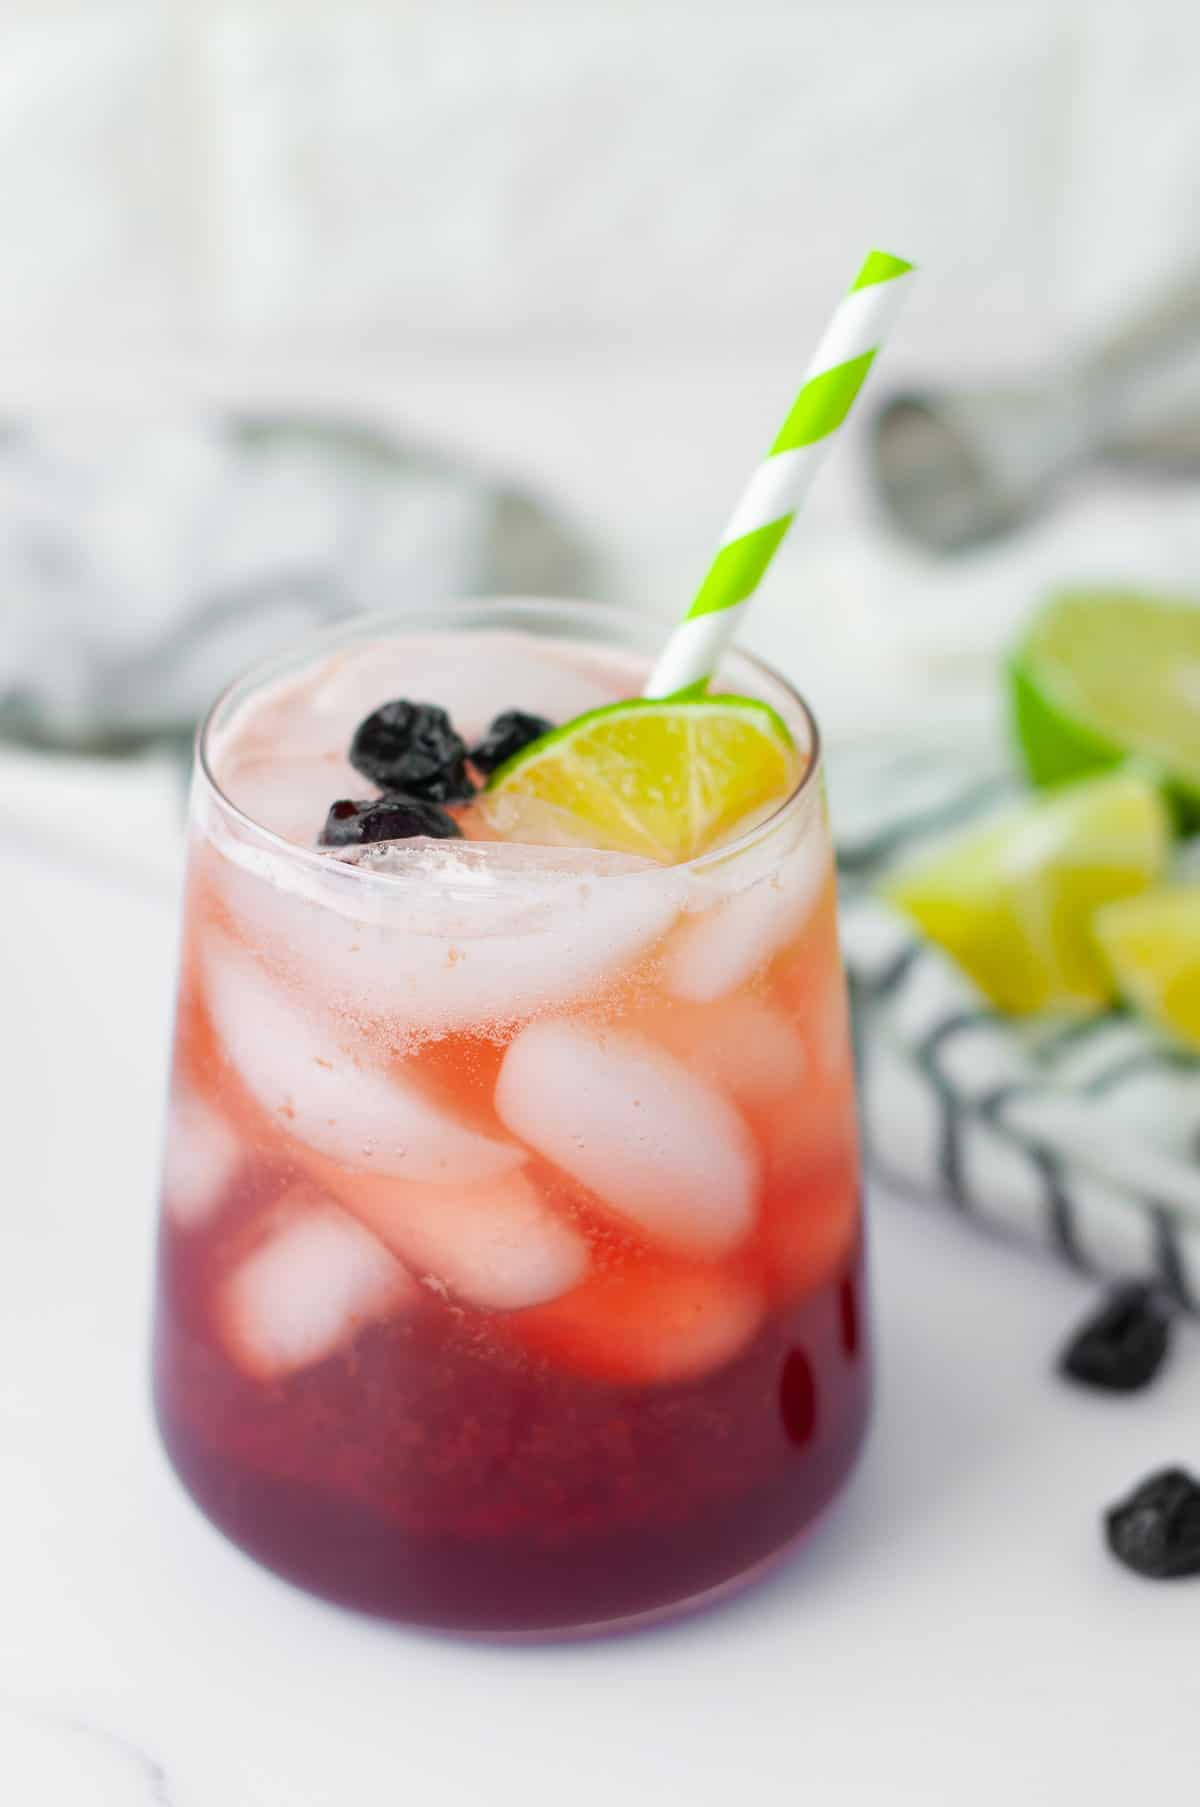 refreshing summer cocktail with tart cherry juice, lime juice, soda water and vodka, served with a green and white striped straw